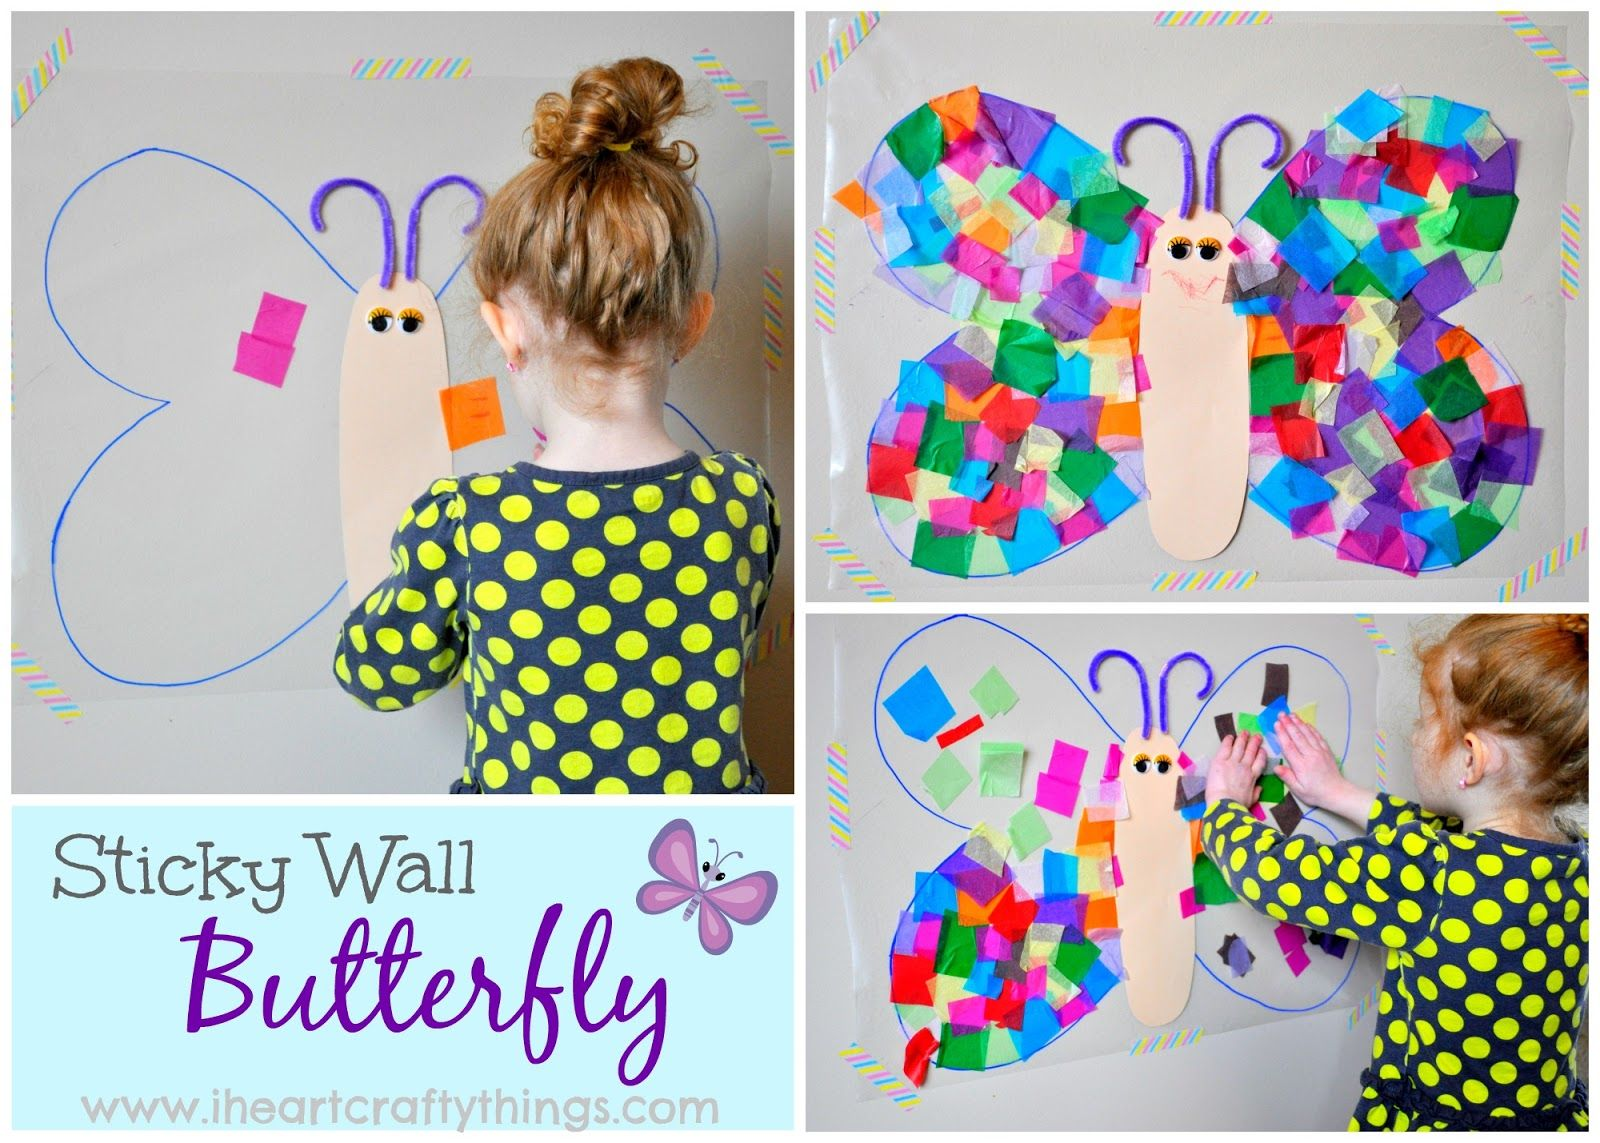 Contact paper sticky wall butterfly craft butterfly crafts contact paper sticky wall butterfly craft jeuxipadfo Image collections